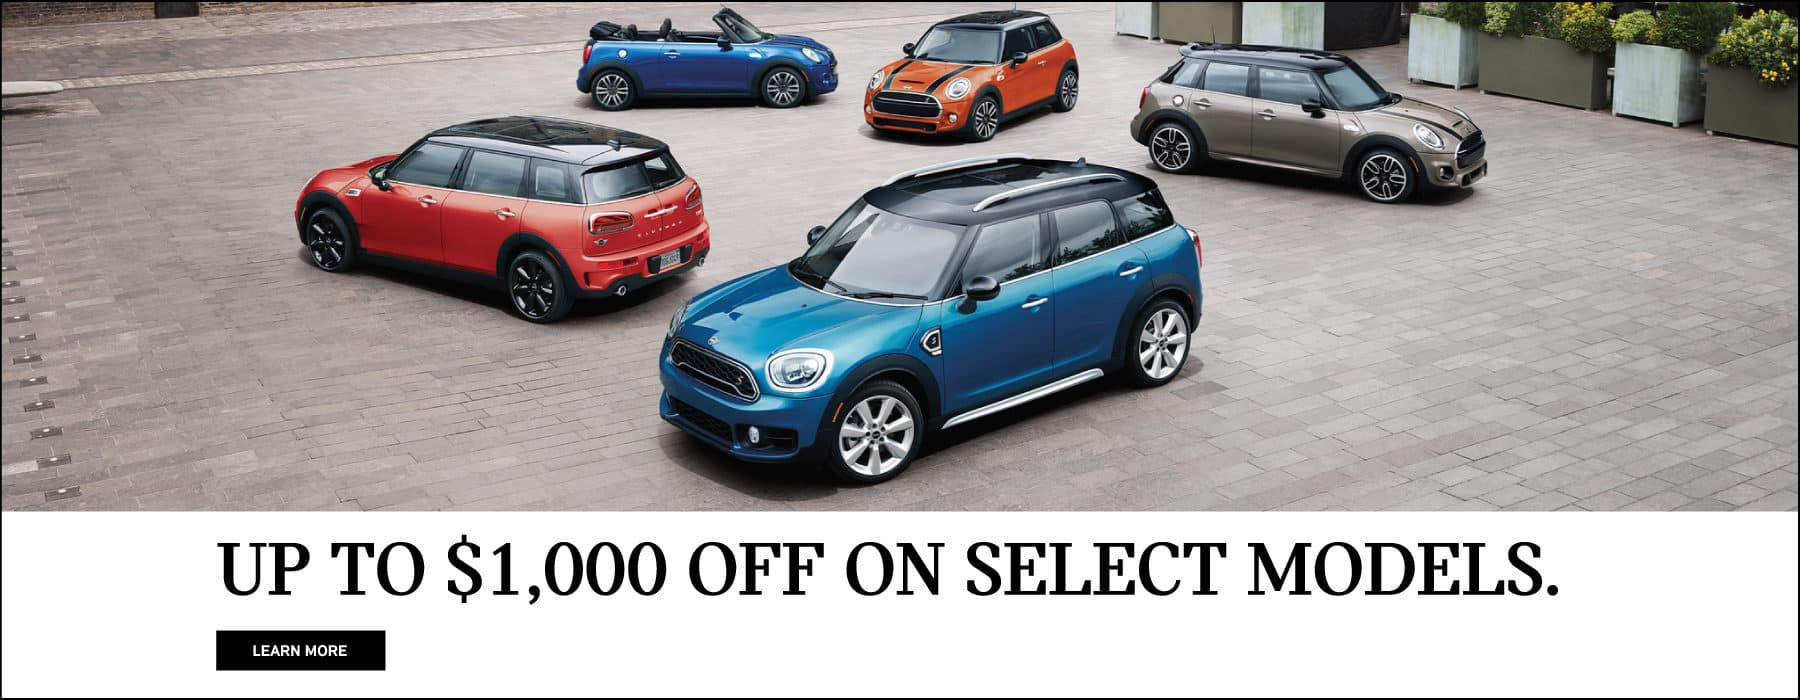 Up to $1,000 off on select models. Learn more button. Family of MINI's parked on brick road.